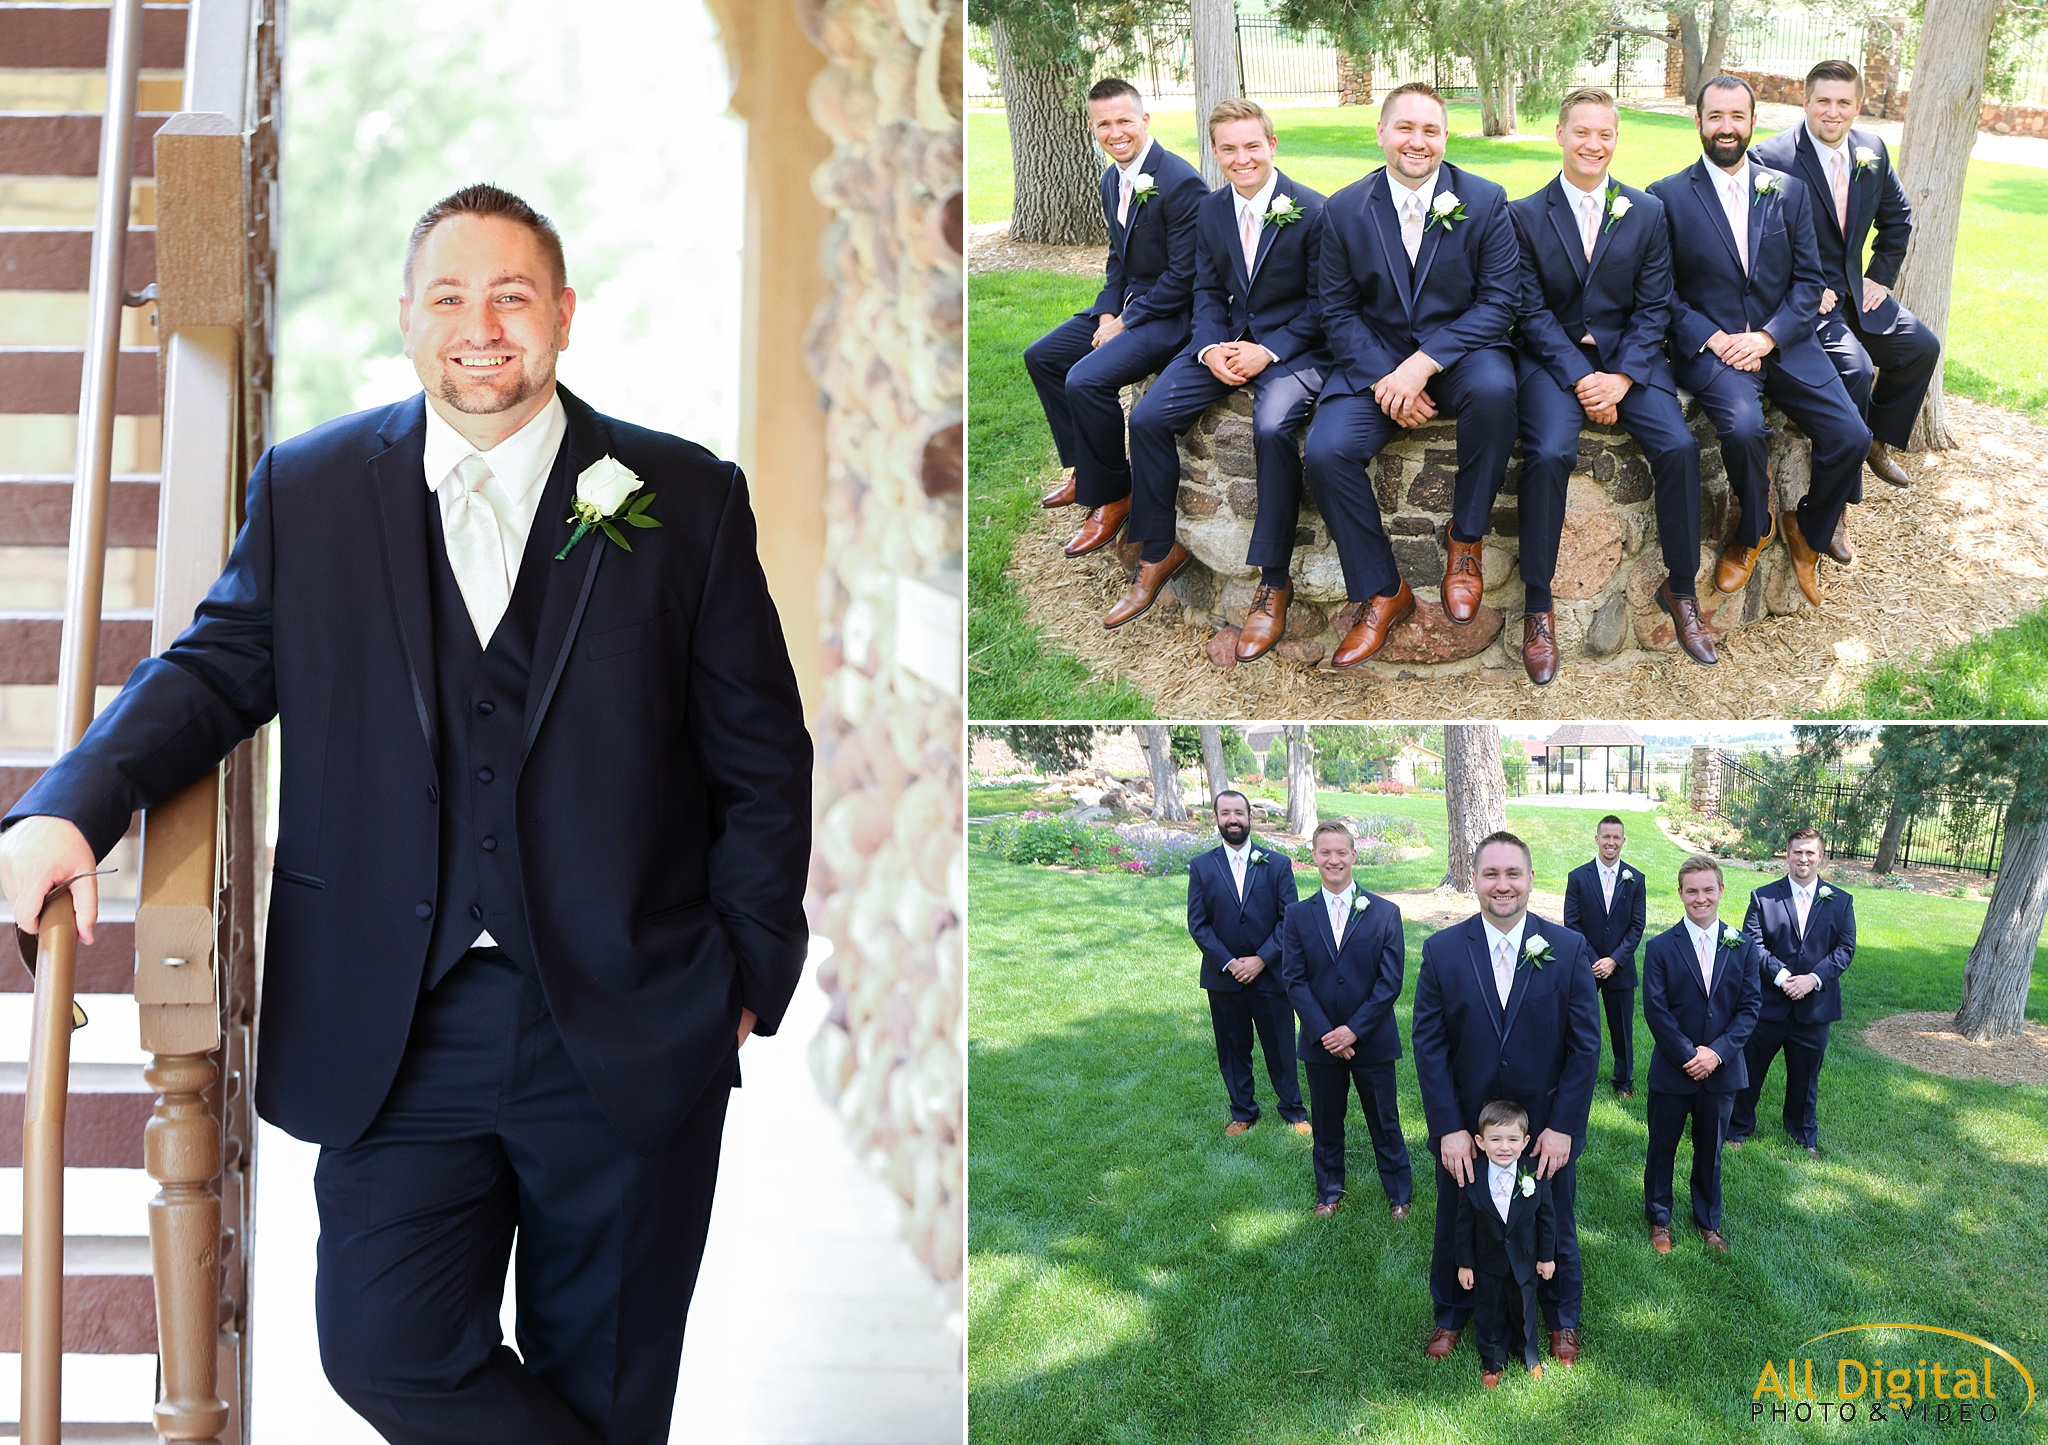 Groom & Groomsmen Photos at Highlands Ranch Mansion